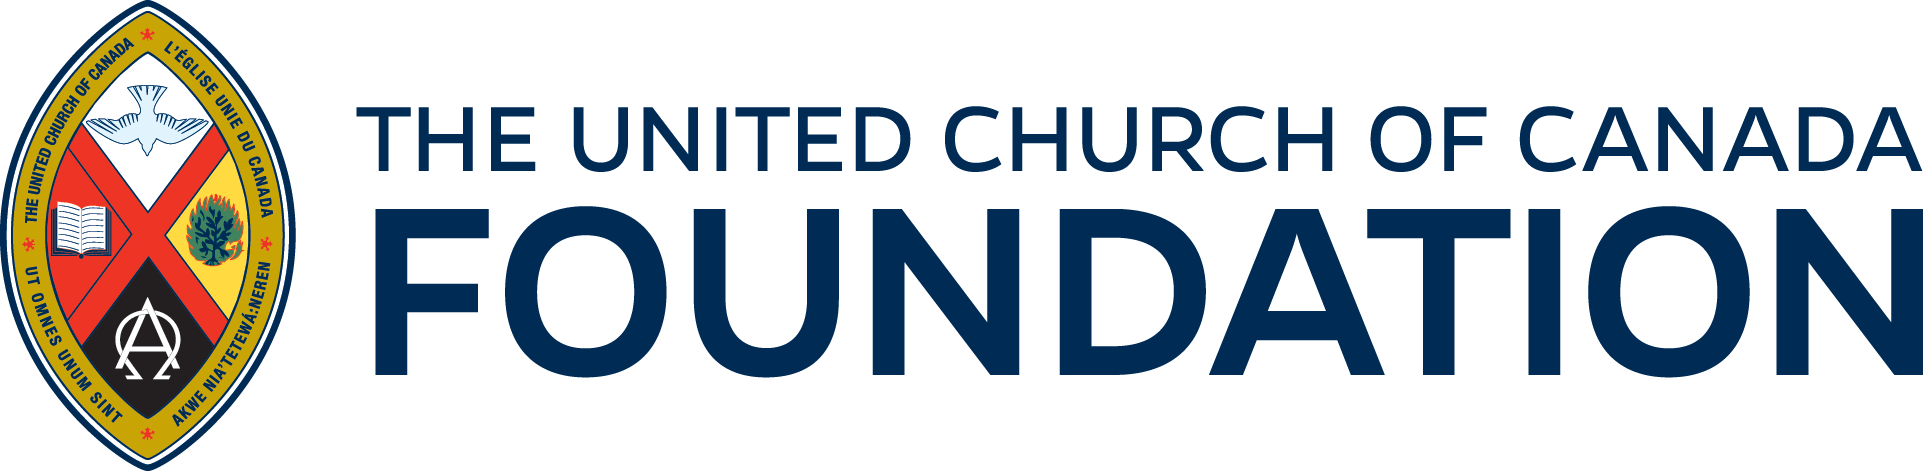 The United Church of Canada Foundation